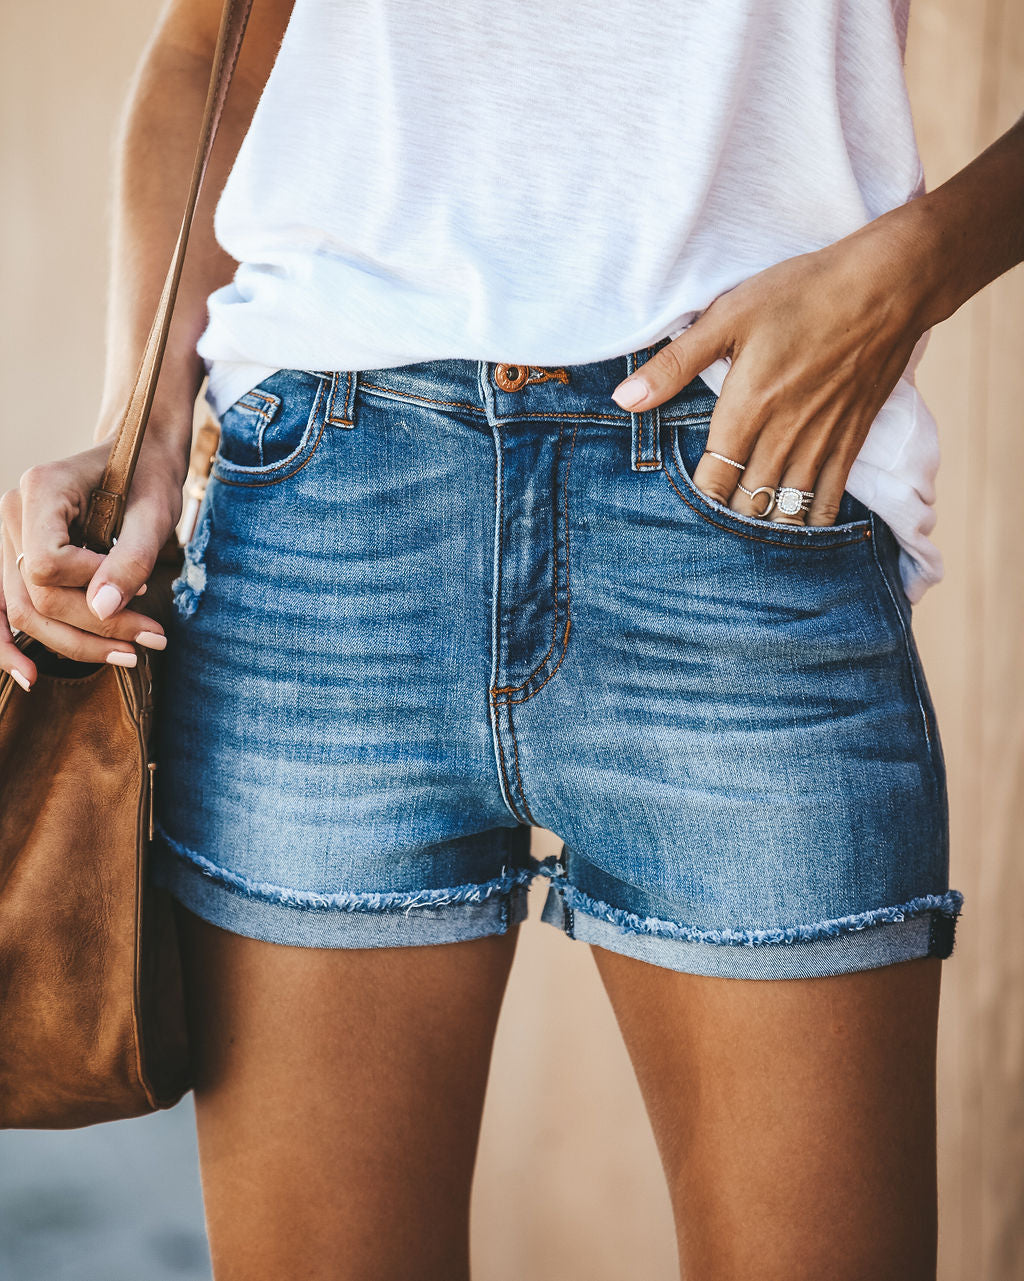 3eb1a89cb84 Detail Product. FILTER ← Home - BESTSELLERS - Tomboy High Rise Cuffed Denim  Shorts